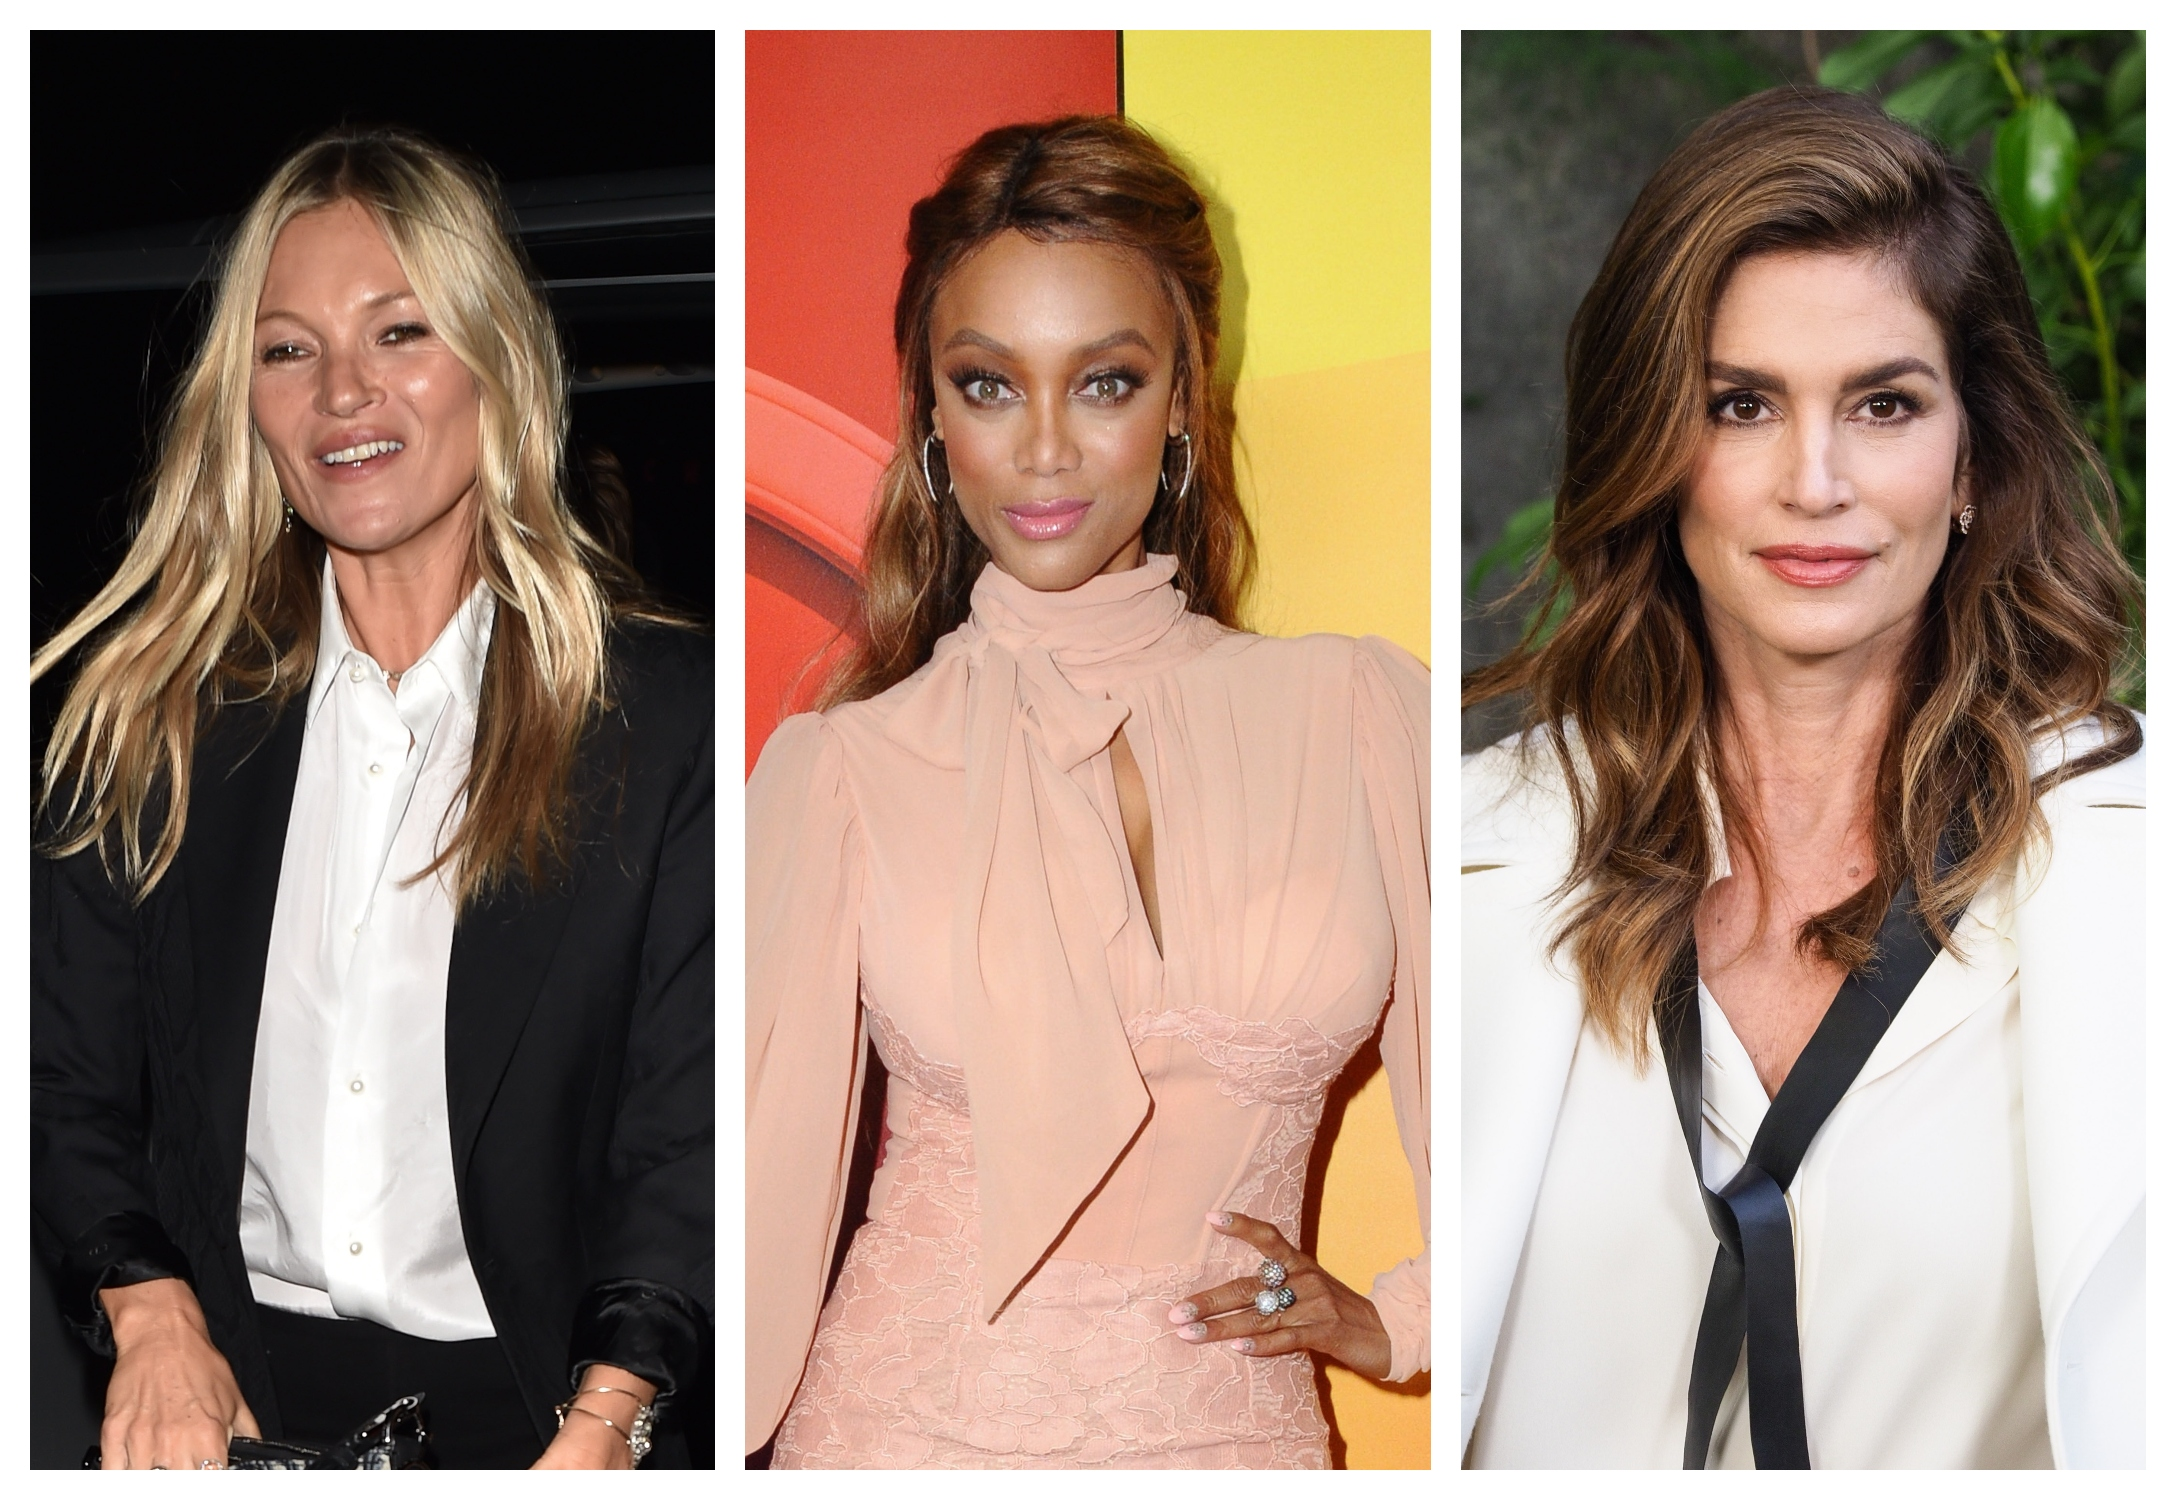 See What the Hottest '90s Supermodels Look Like Now